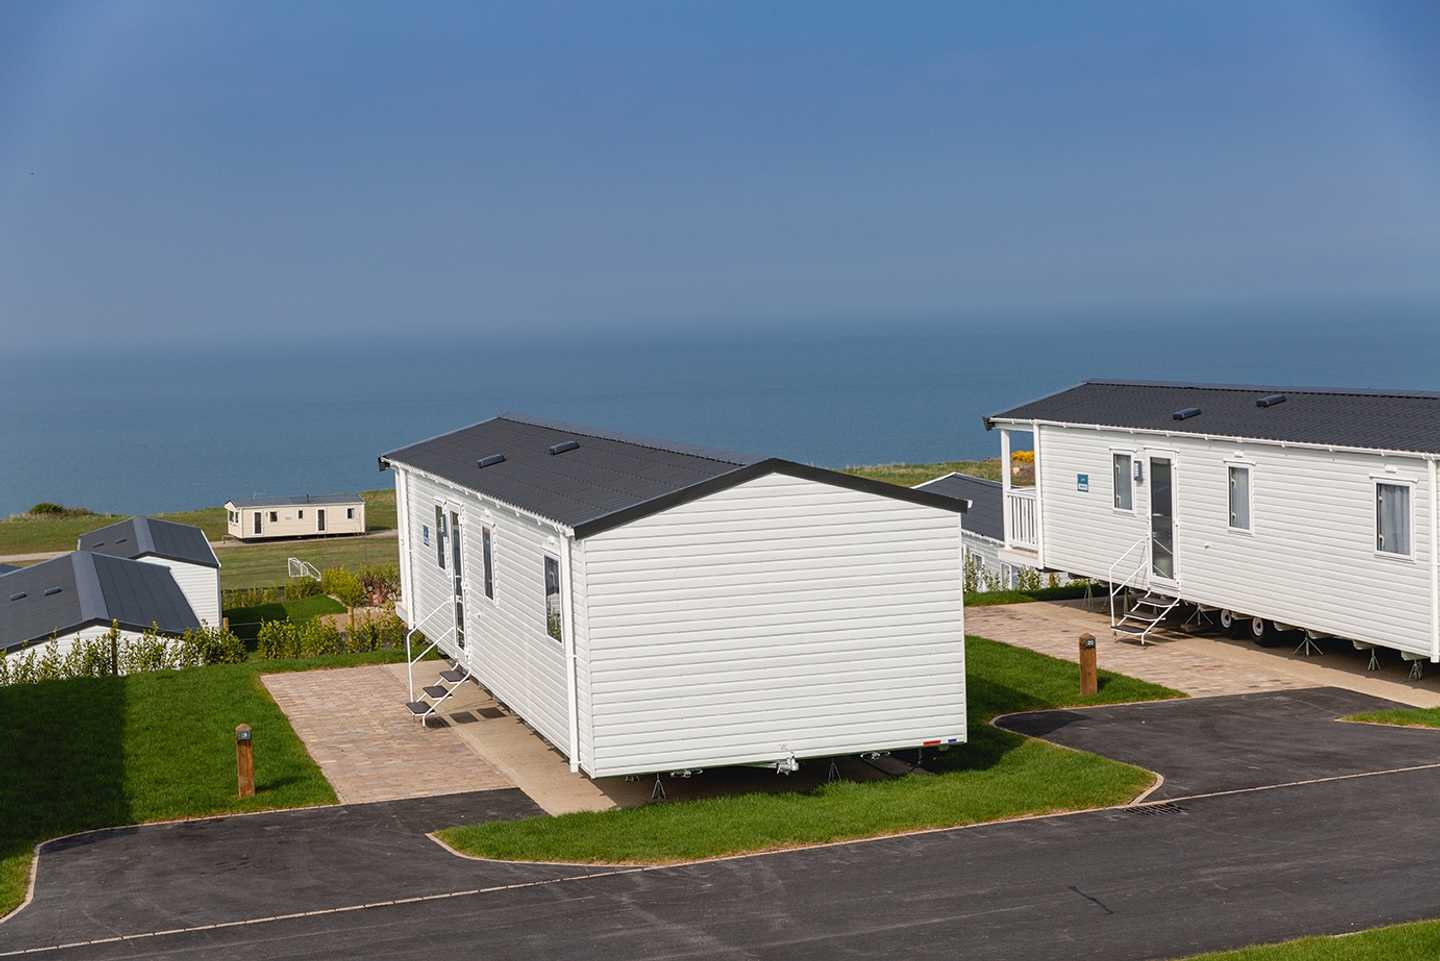 Dedicated parking space complete with sea views